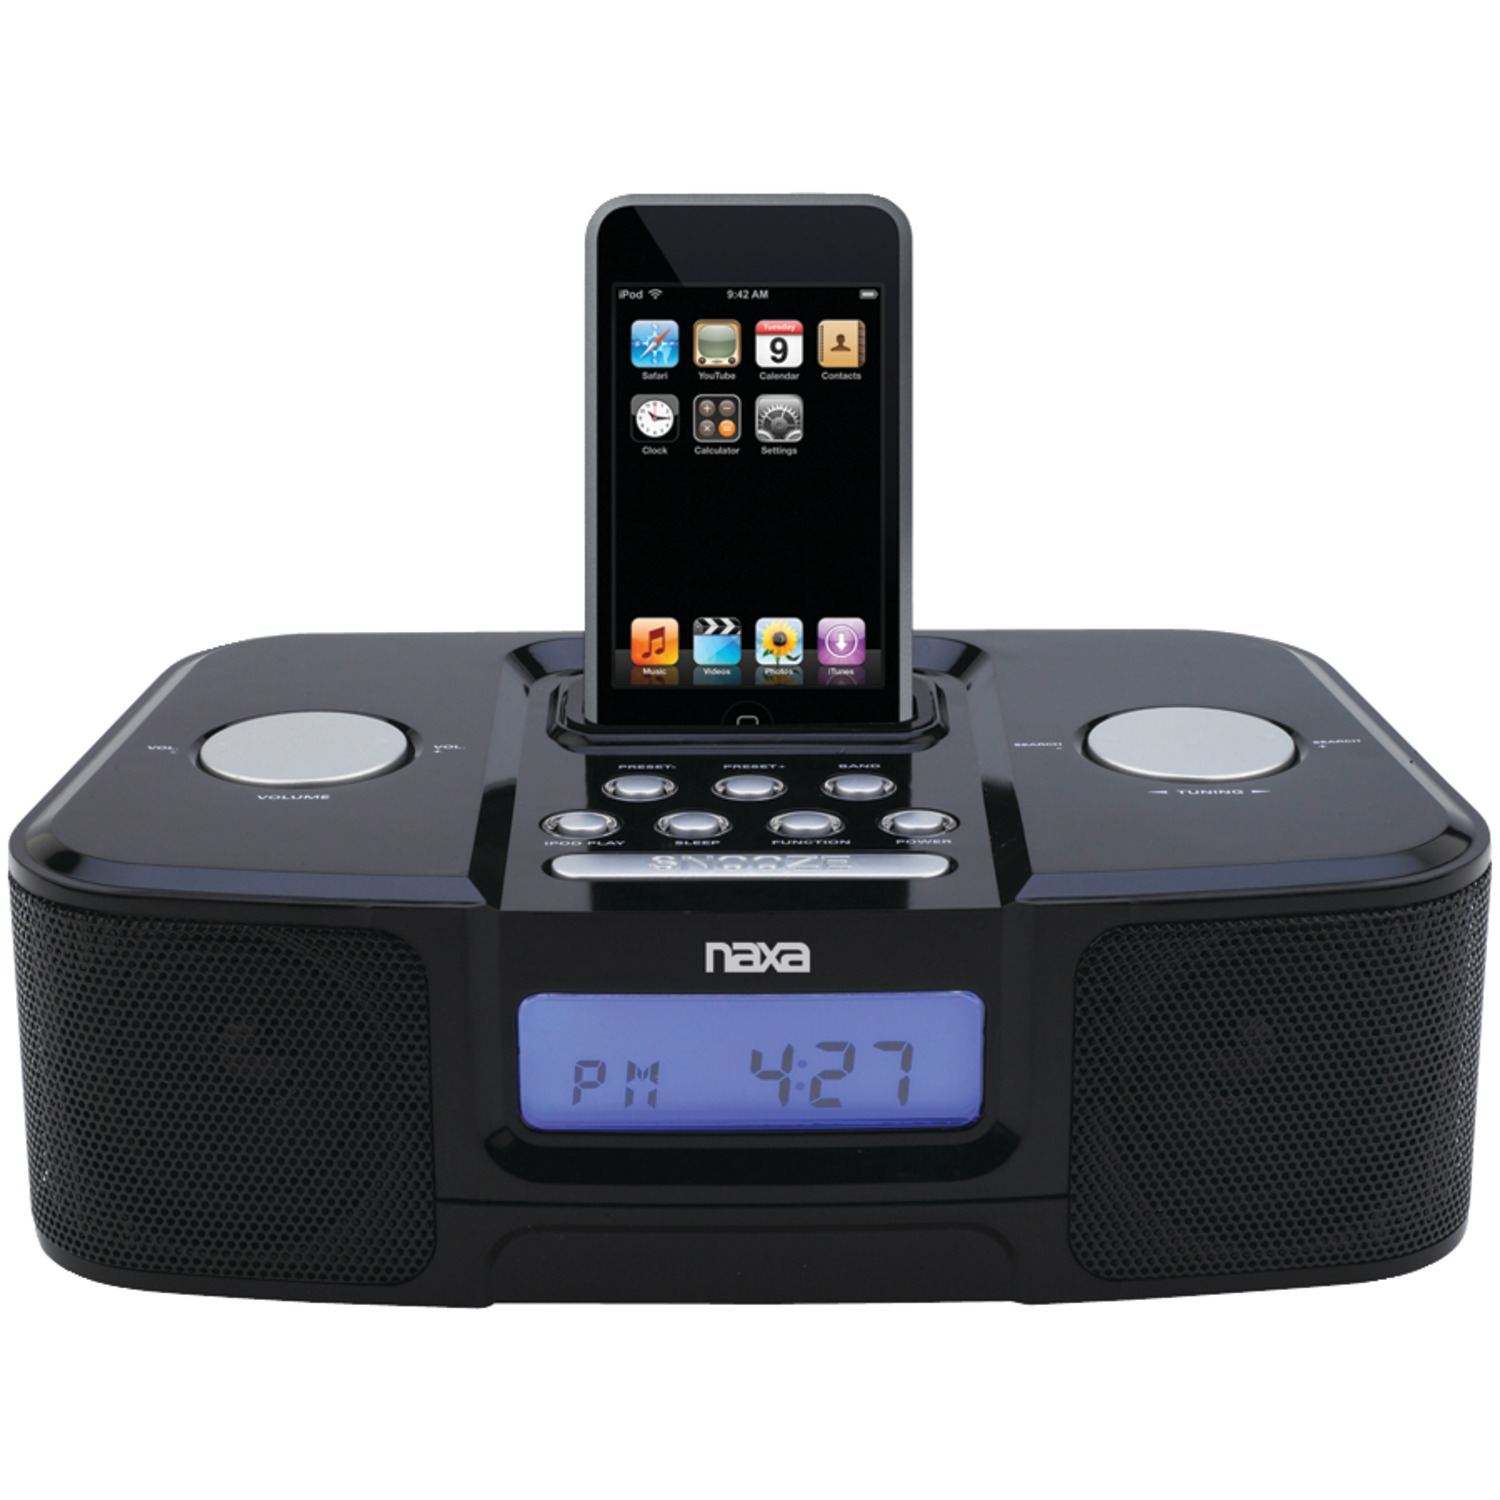 naxa ni3103a digital alarm clock radio with iphone r ipod r dock. Black Bedroom Furniture Sets. Home Design Ideas